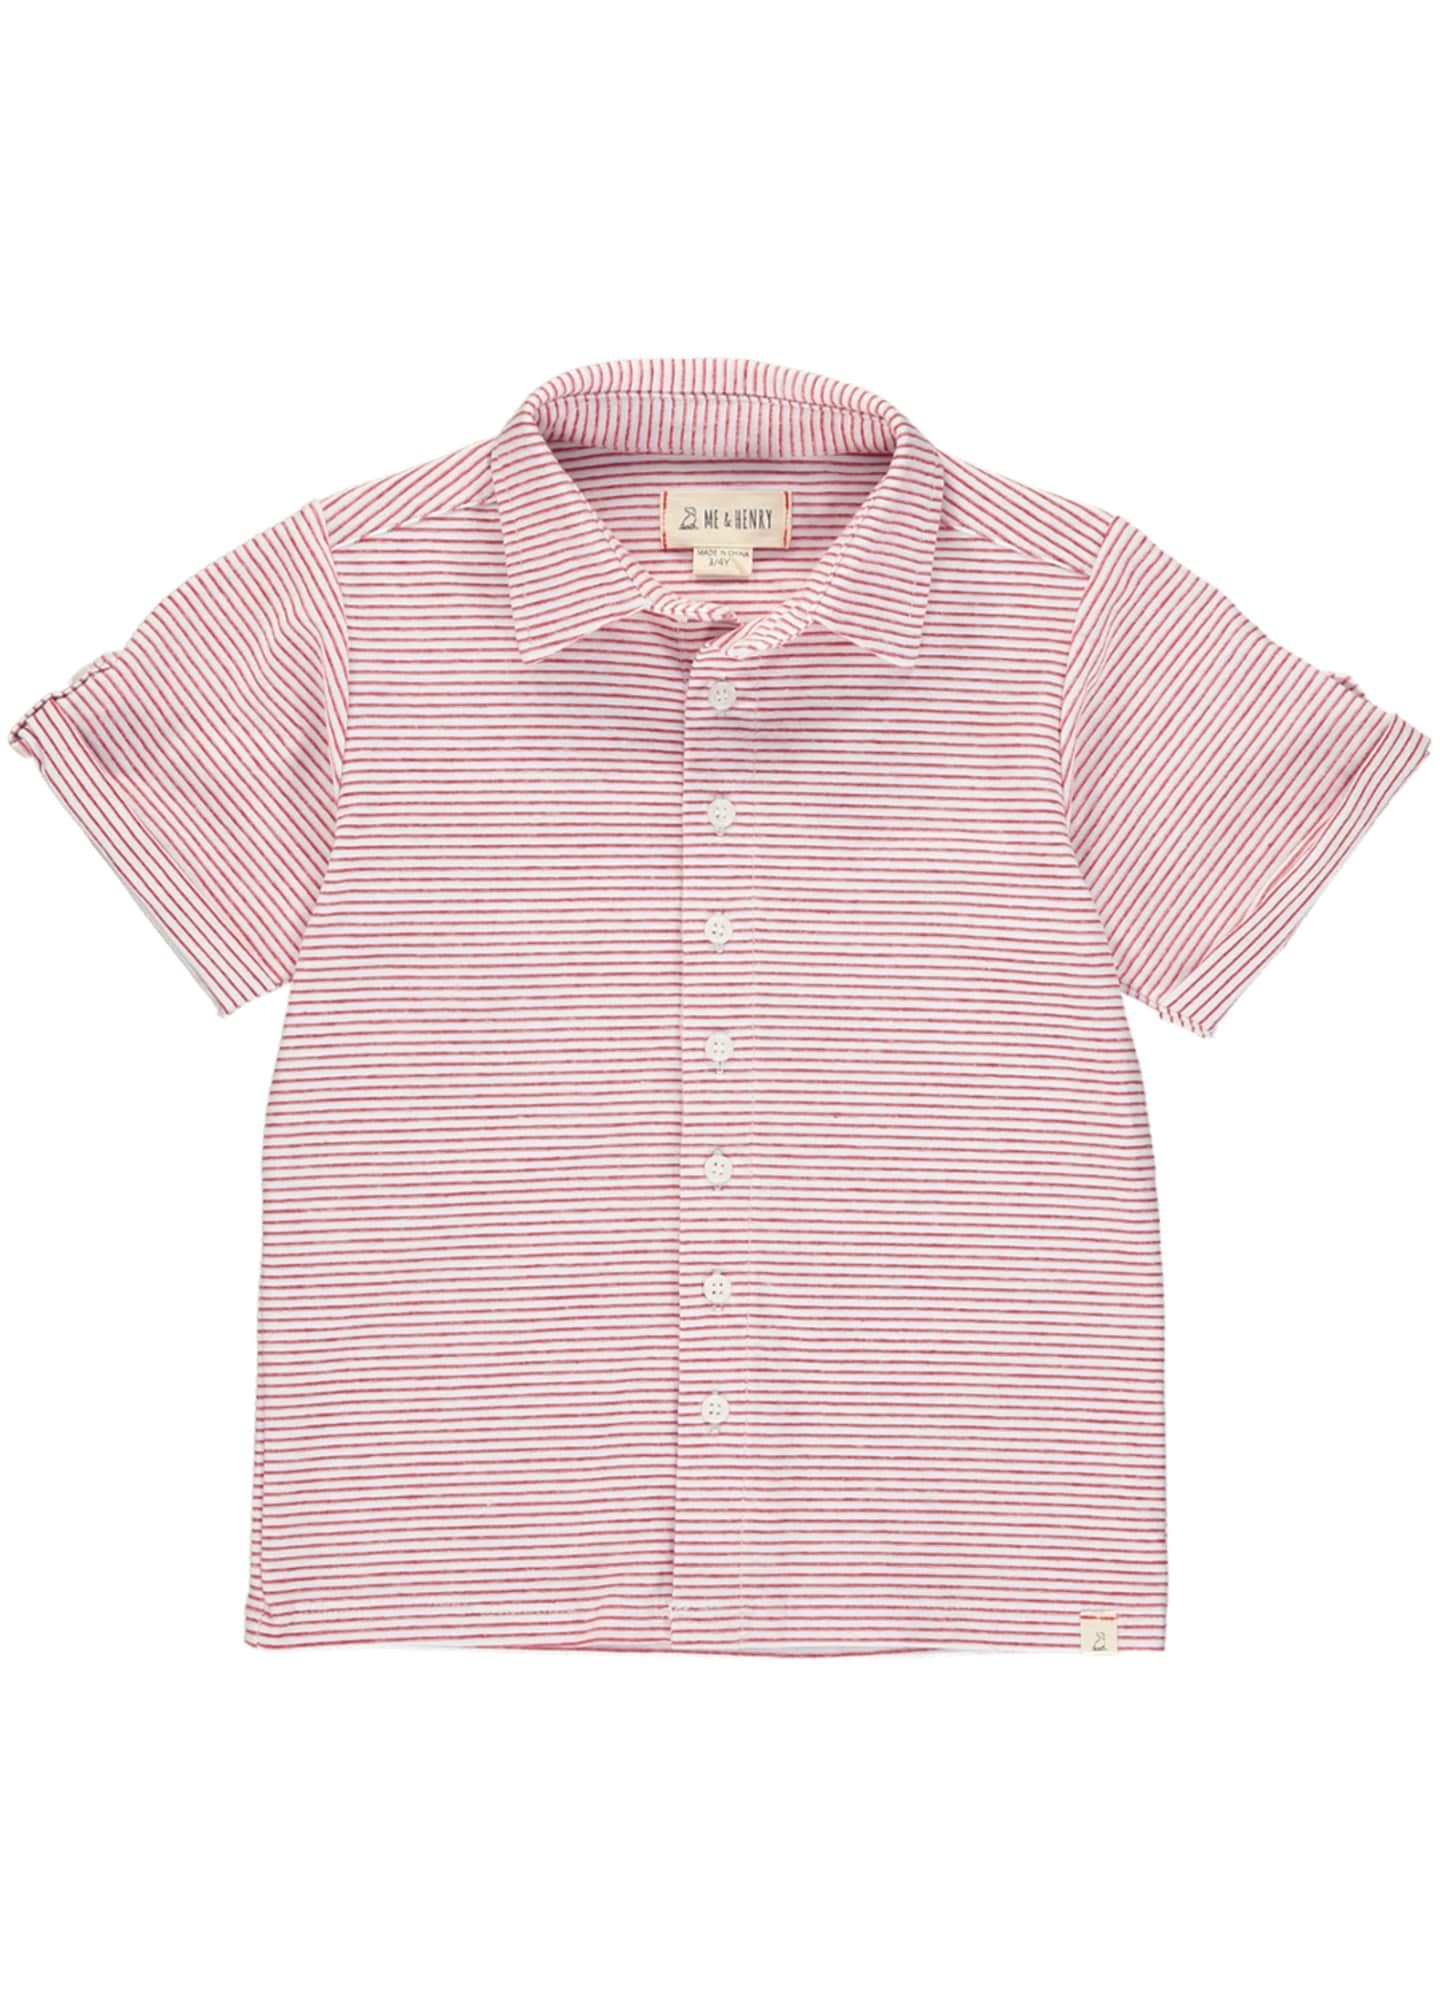 Image 1 of 1: Boy's Striped Button-Front Shirt w/ Children's Book, Size 3T-10